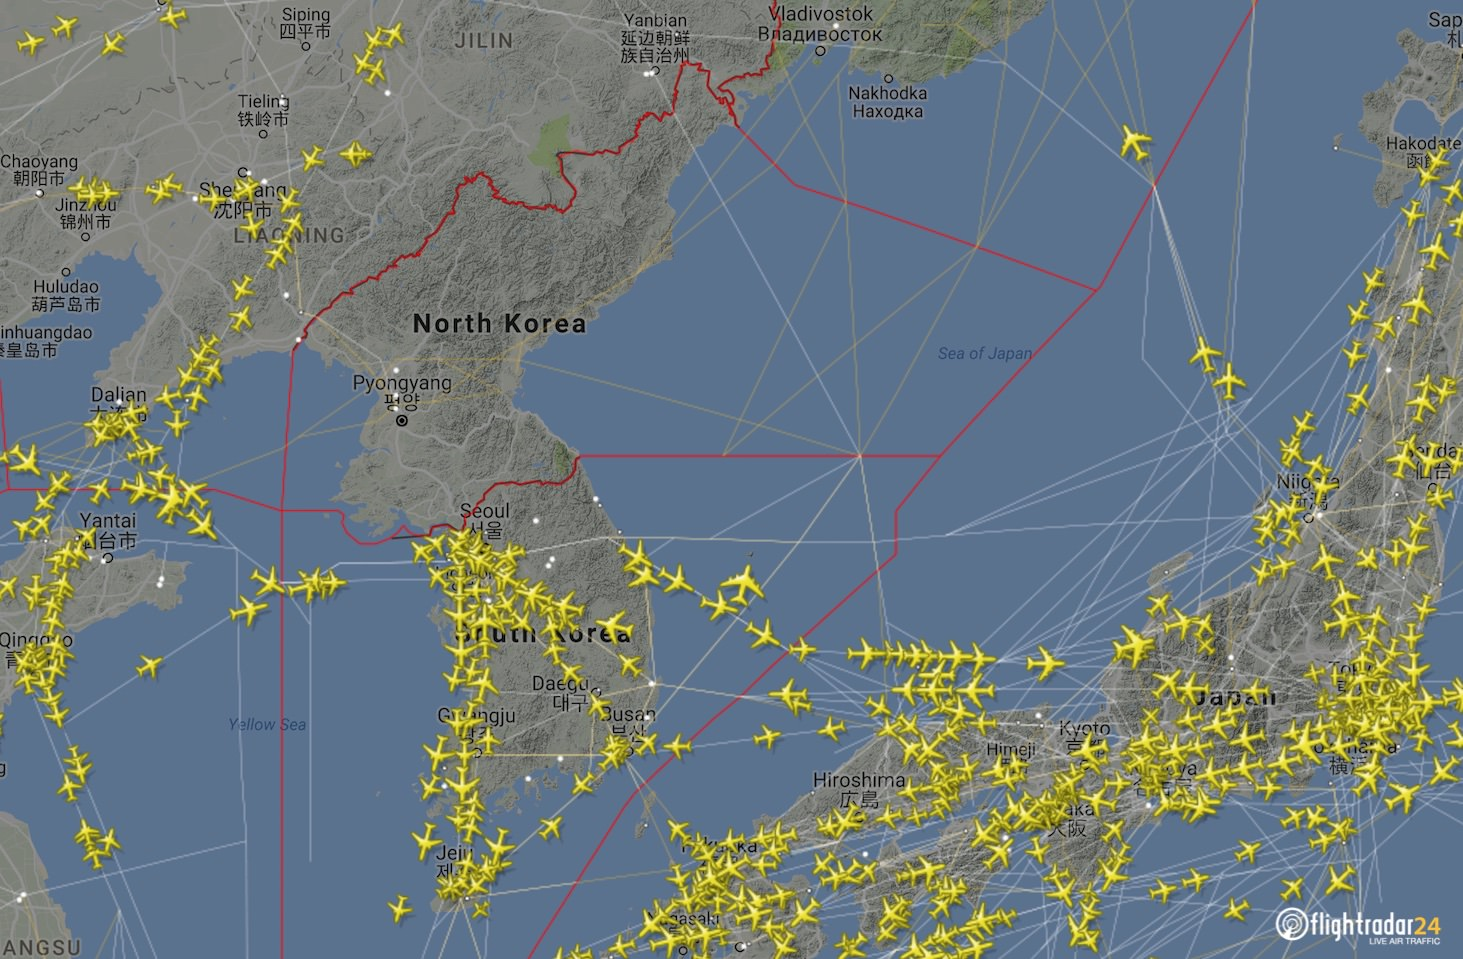 A Look At Airspace In North Korea And The Surrounding Area